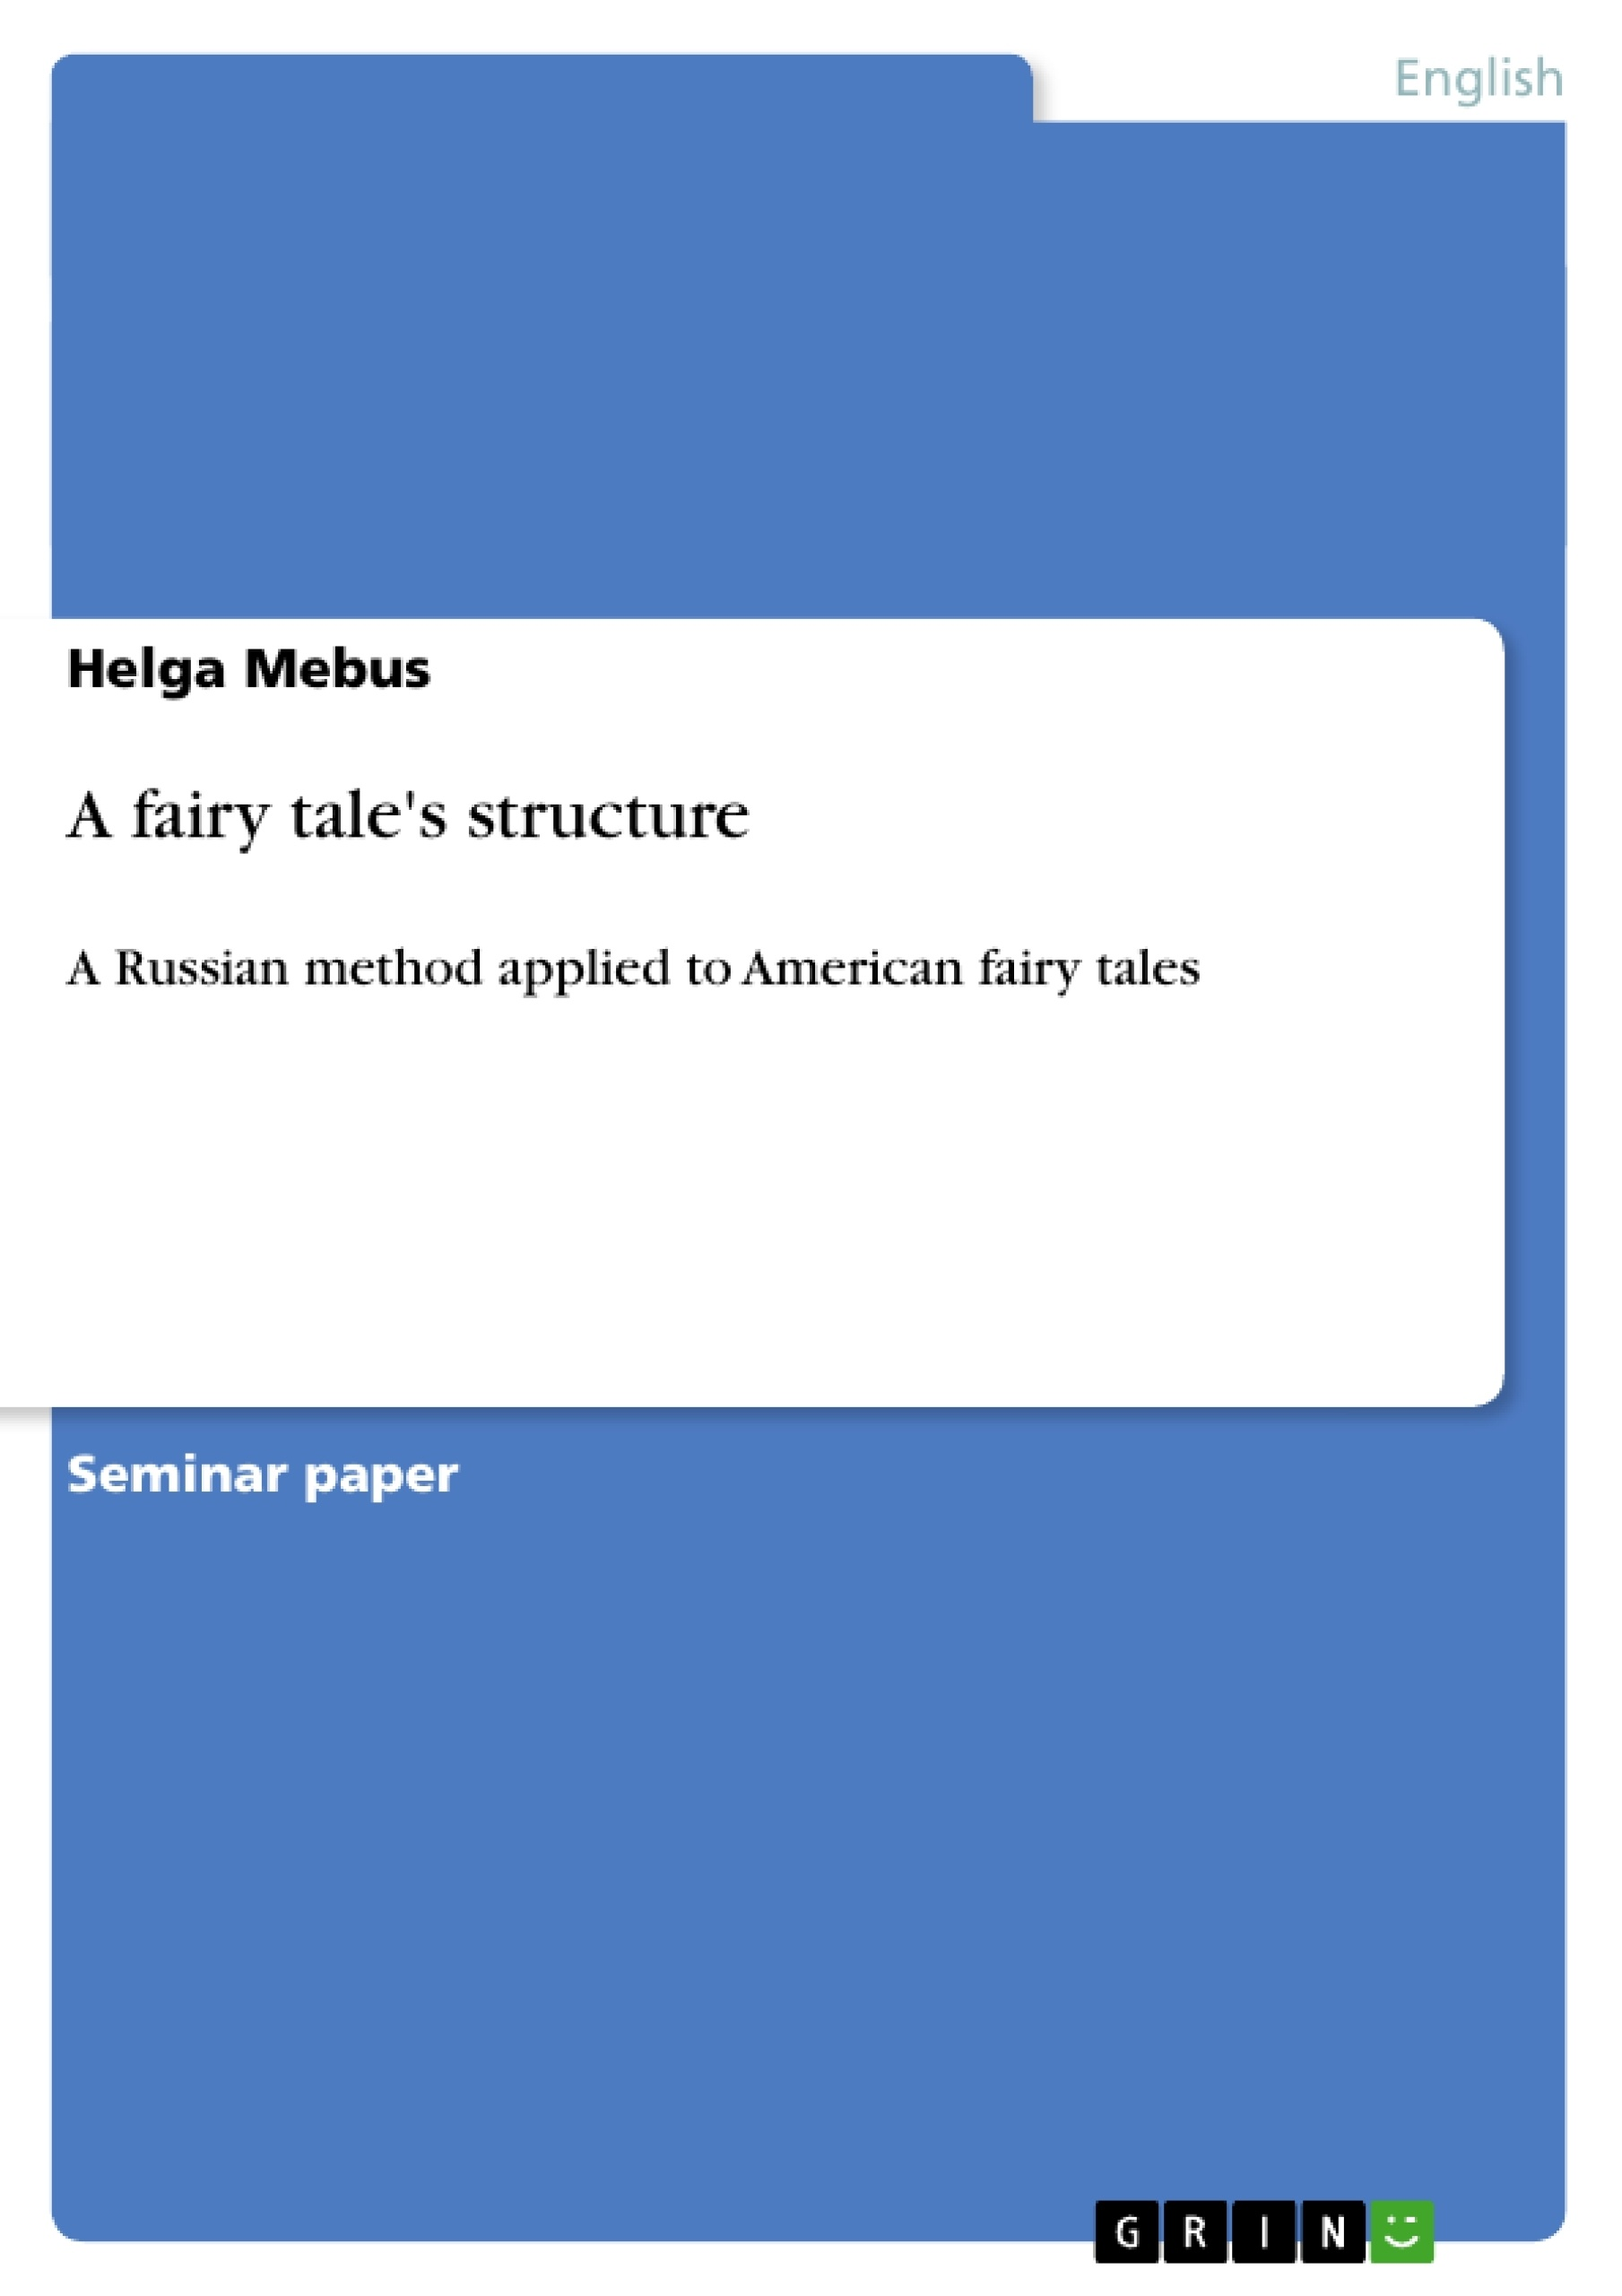 Title: A fairy tale's structure